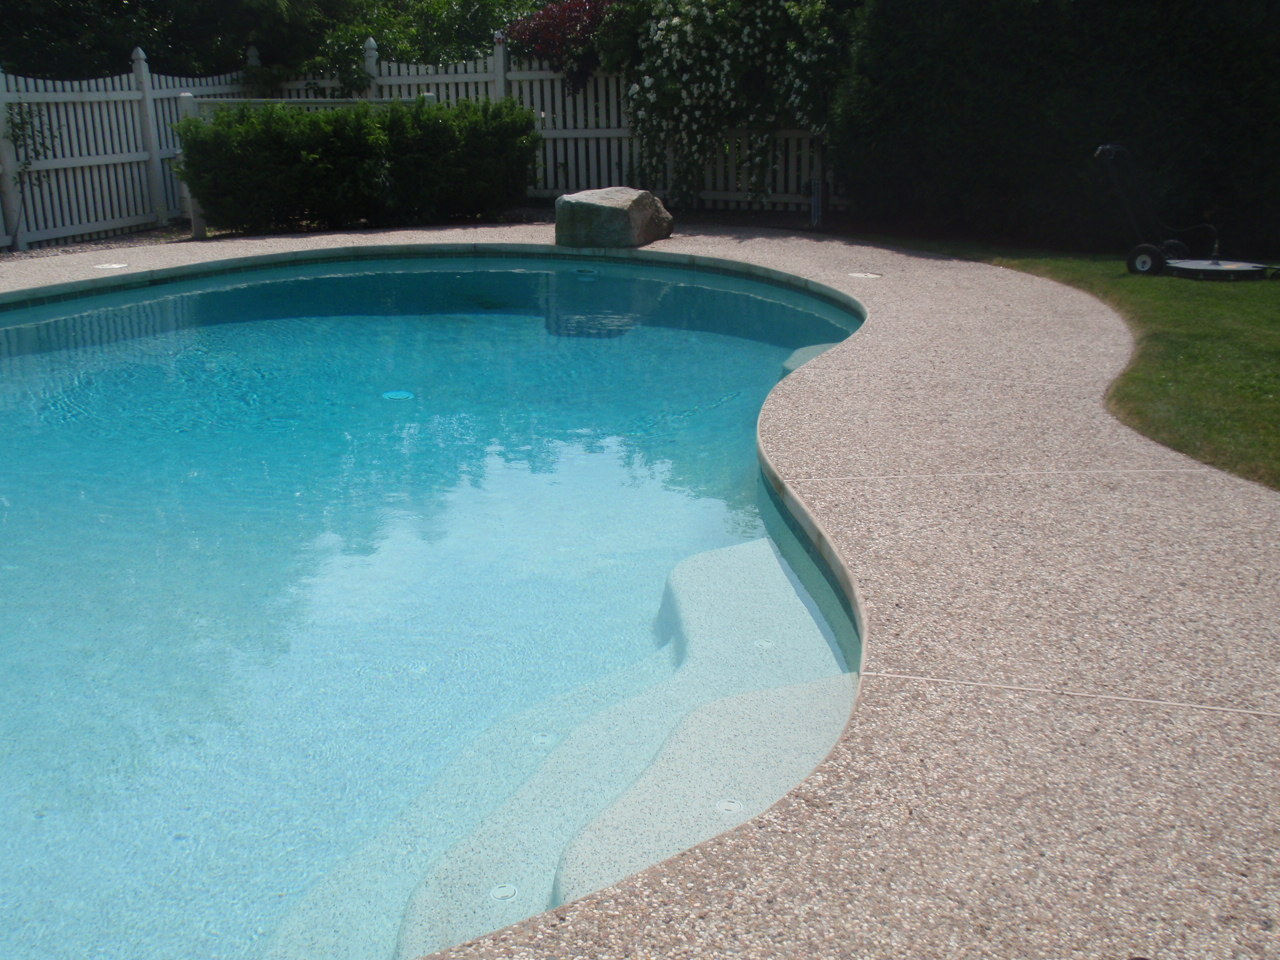 Sealing exposed aggregate pool deck - Sealing An Exposed Aggregate